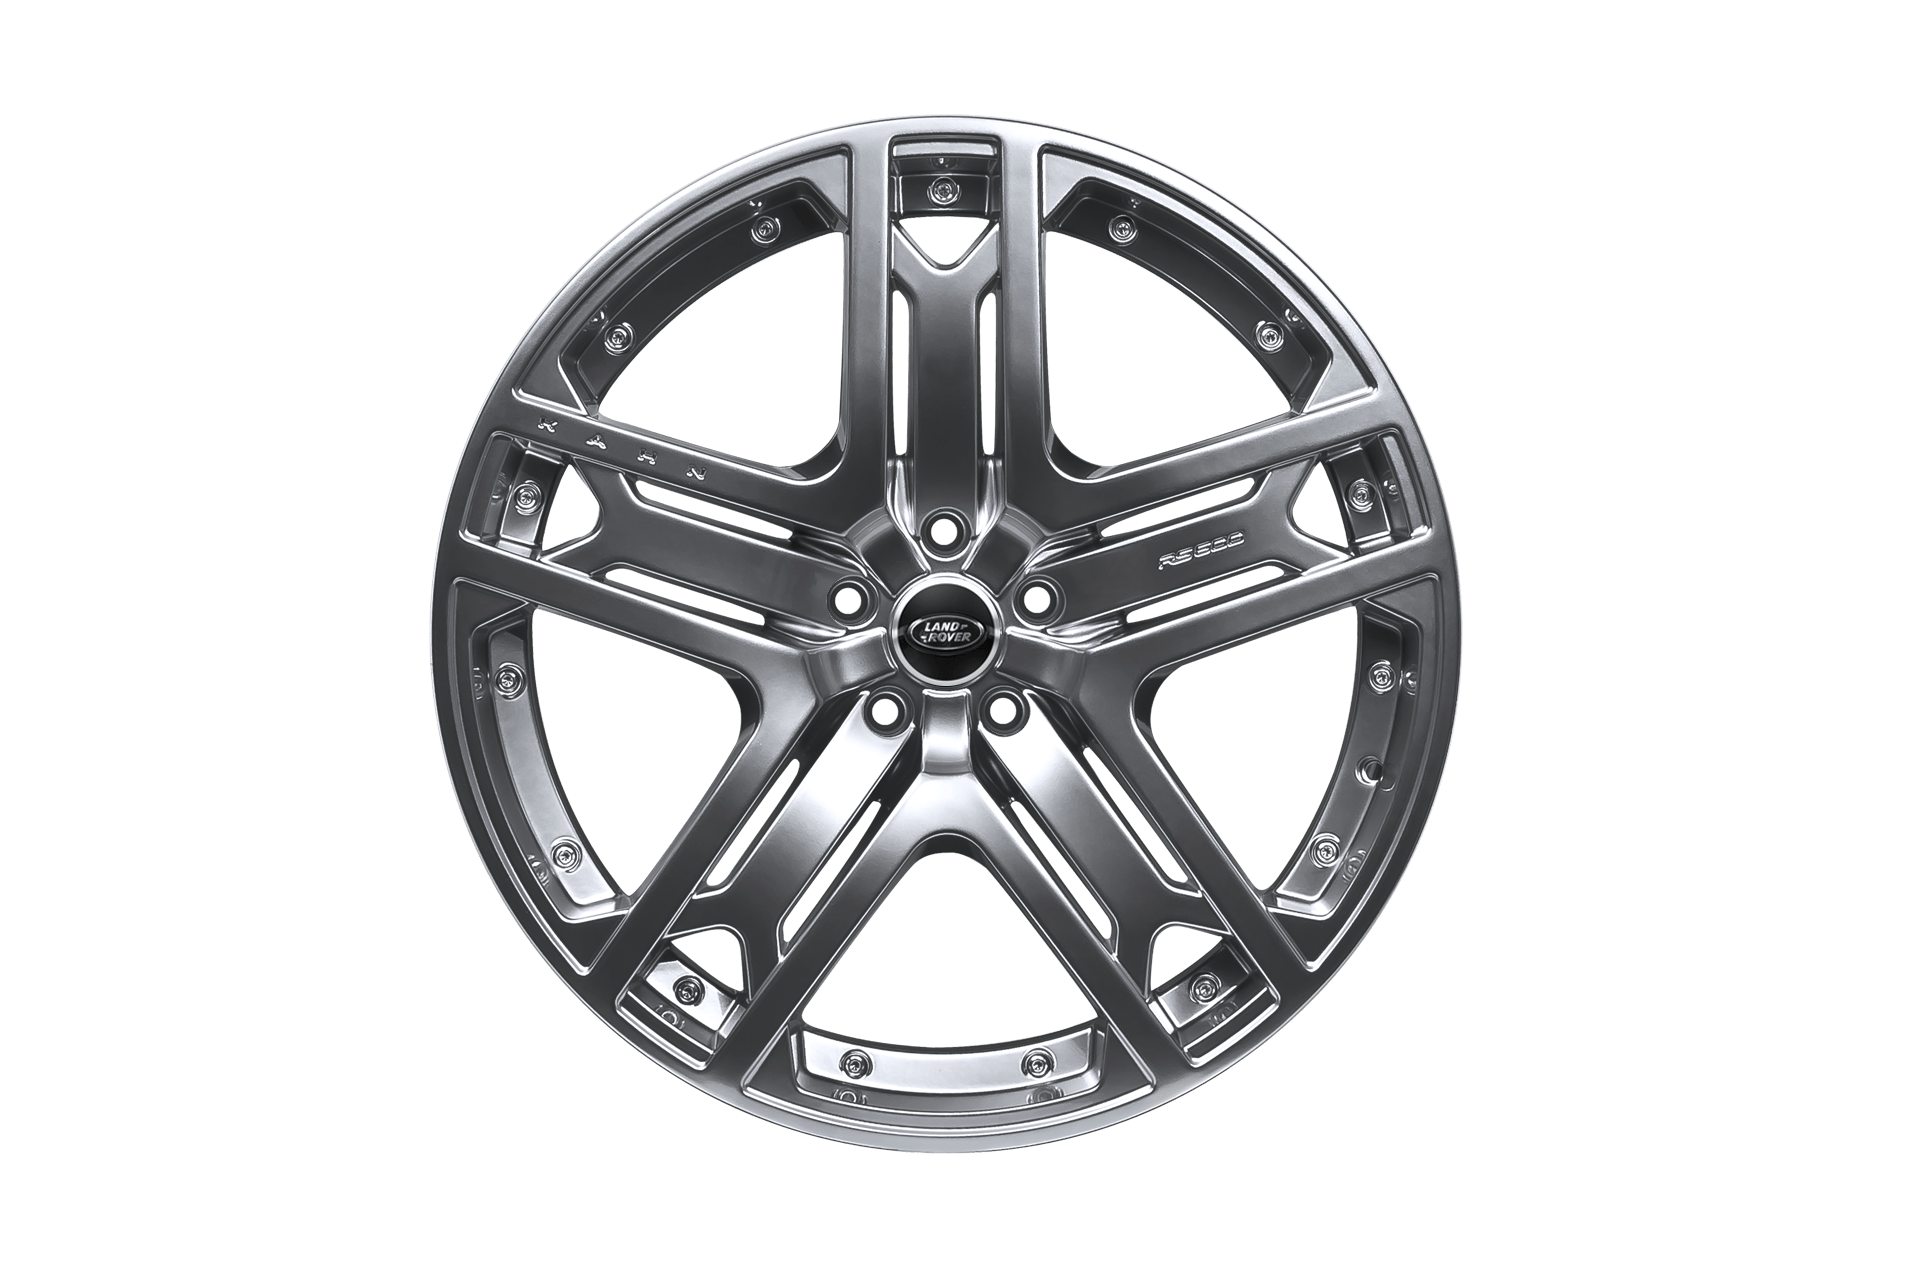 Land Rover Discovery (2017-Present) Rs600 Light Alloy Wheels by Kahn - Image 3433